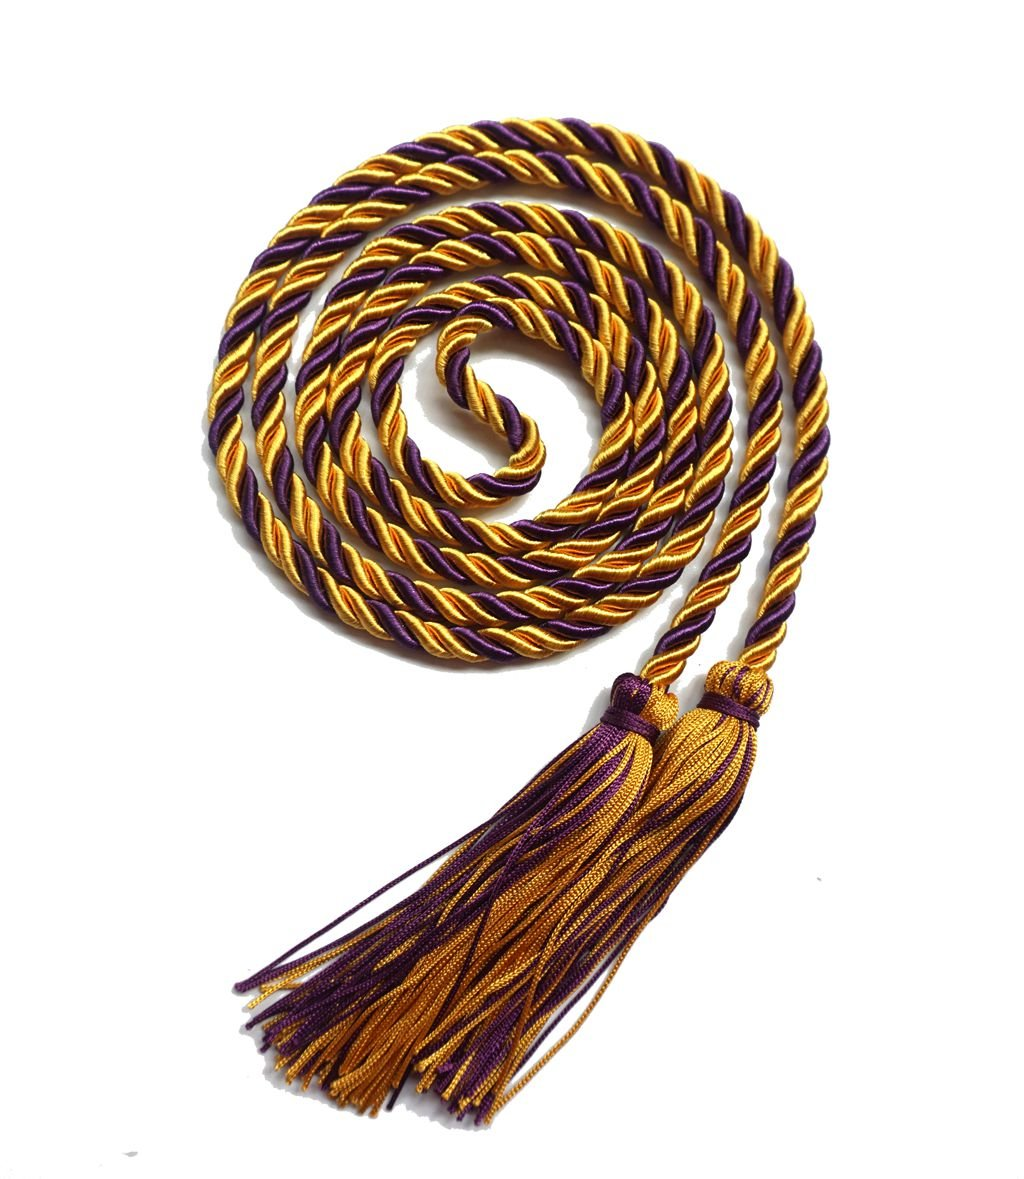 Graduation Honor Cord Two-color Braided Grad Days Gold Purple